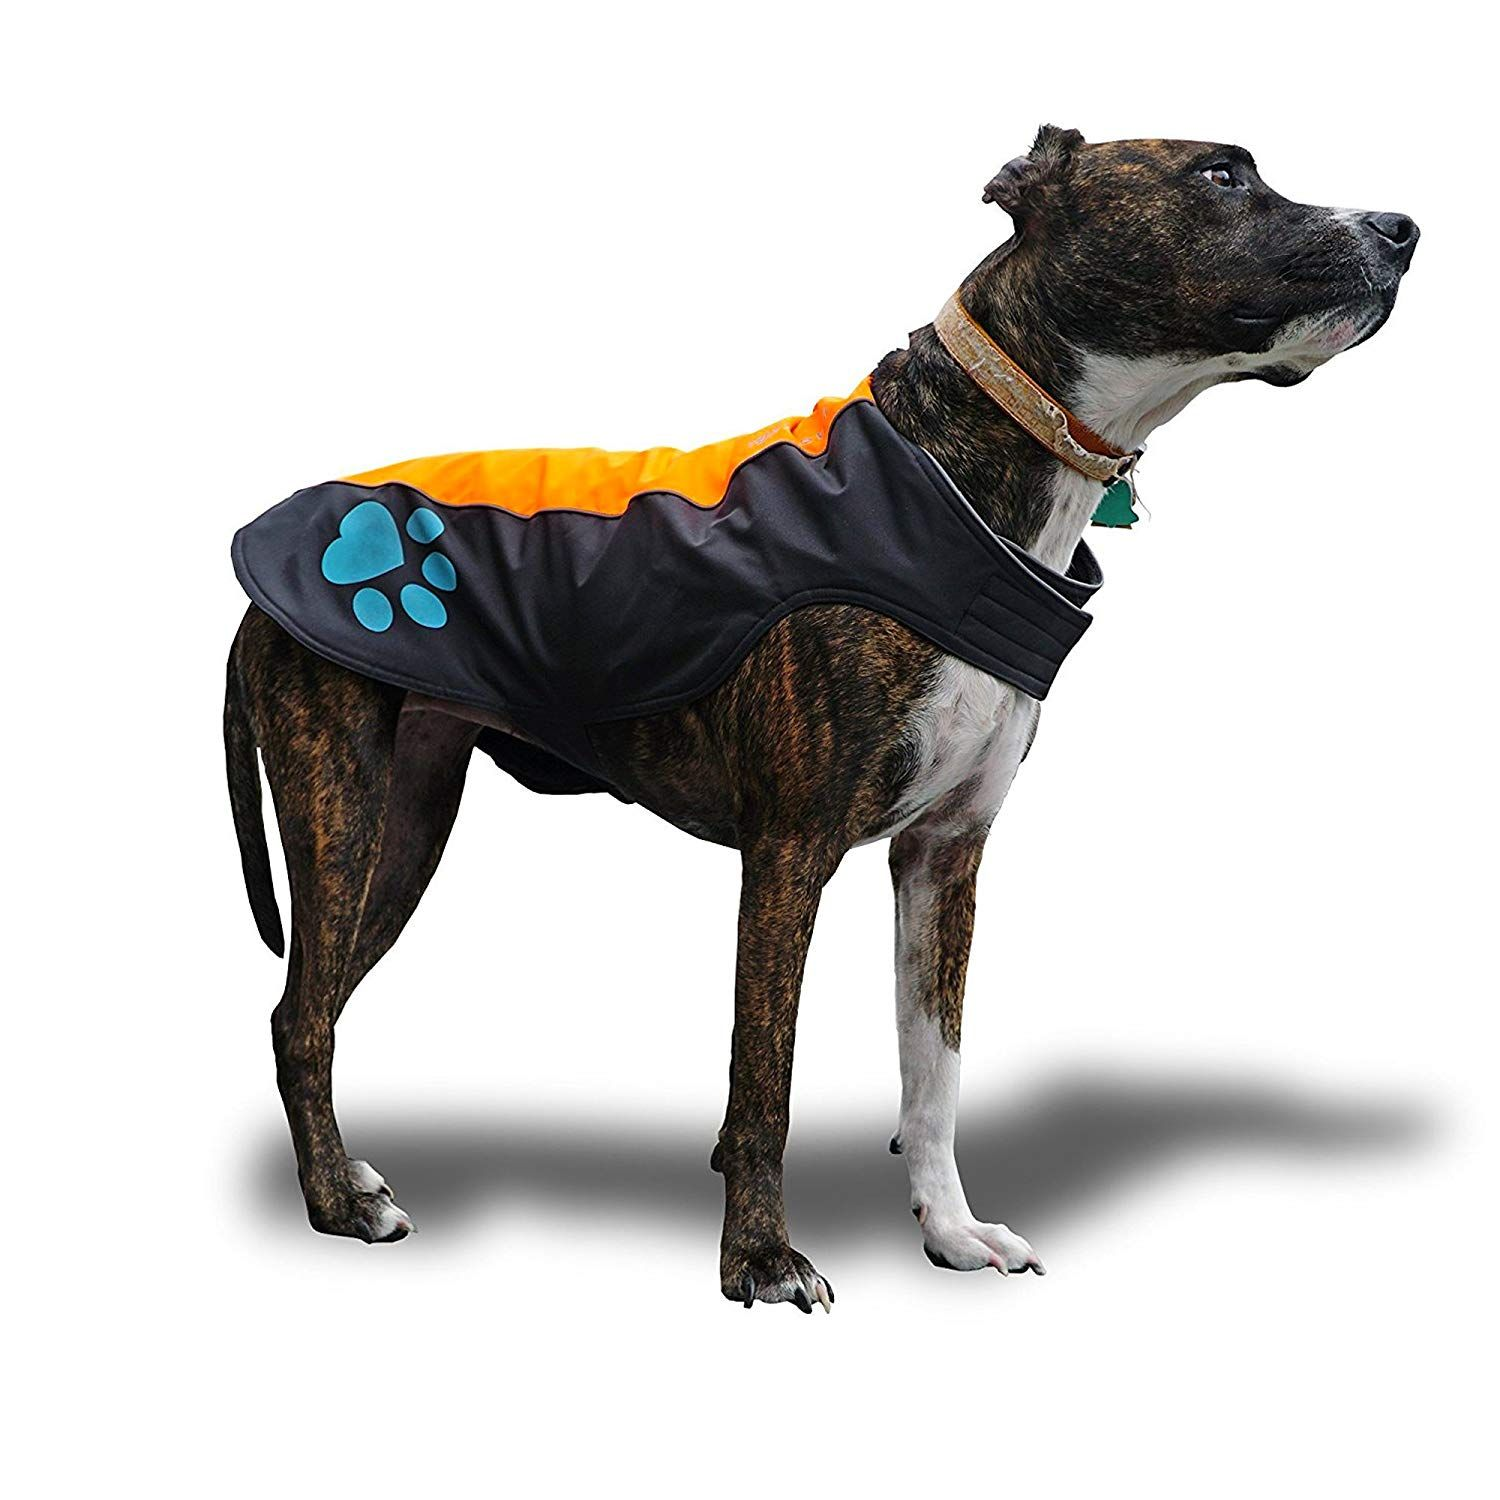 Safetypup Xd Dog Rain Vest Waterproof Dog Jacket For Large And Small Dogs Hi Visibility Reflective Vest With Fleece L Dog Jacket Small Dogs Reflective Vest [ 1500 x 1500 Pixel ]